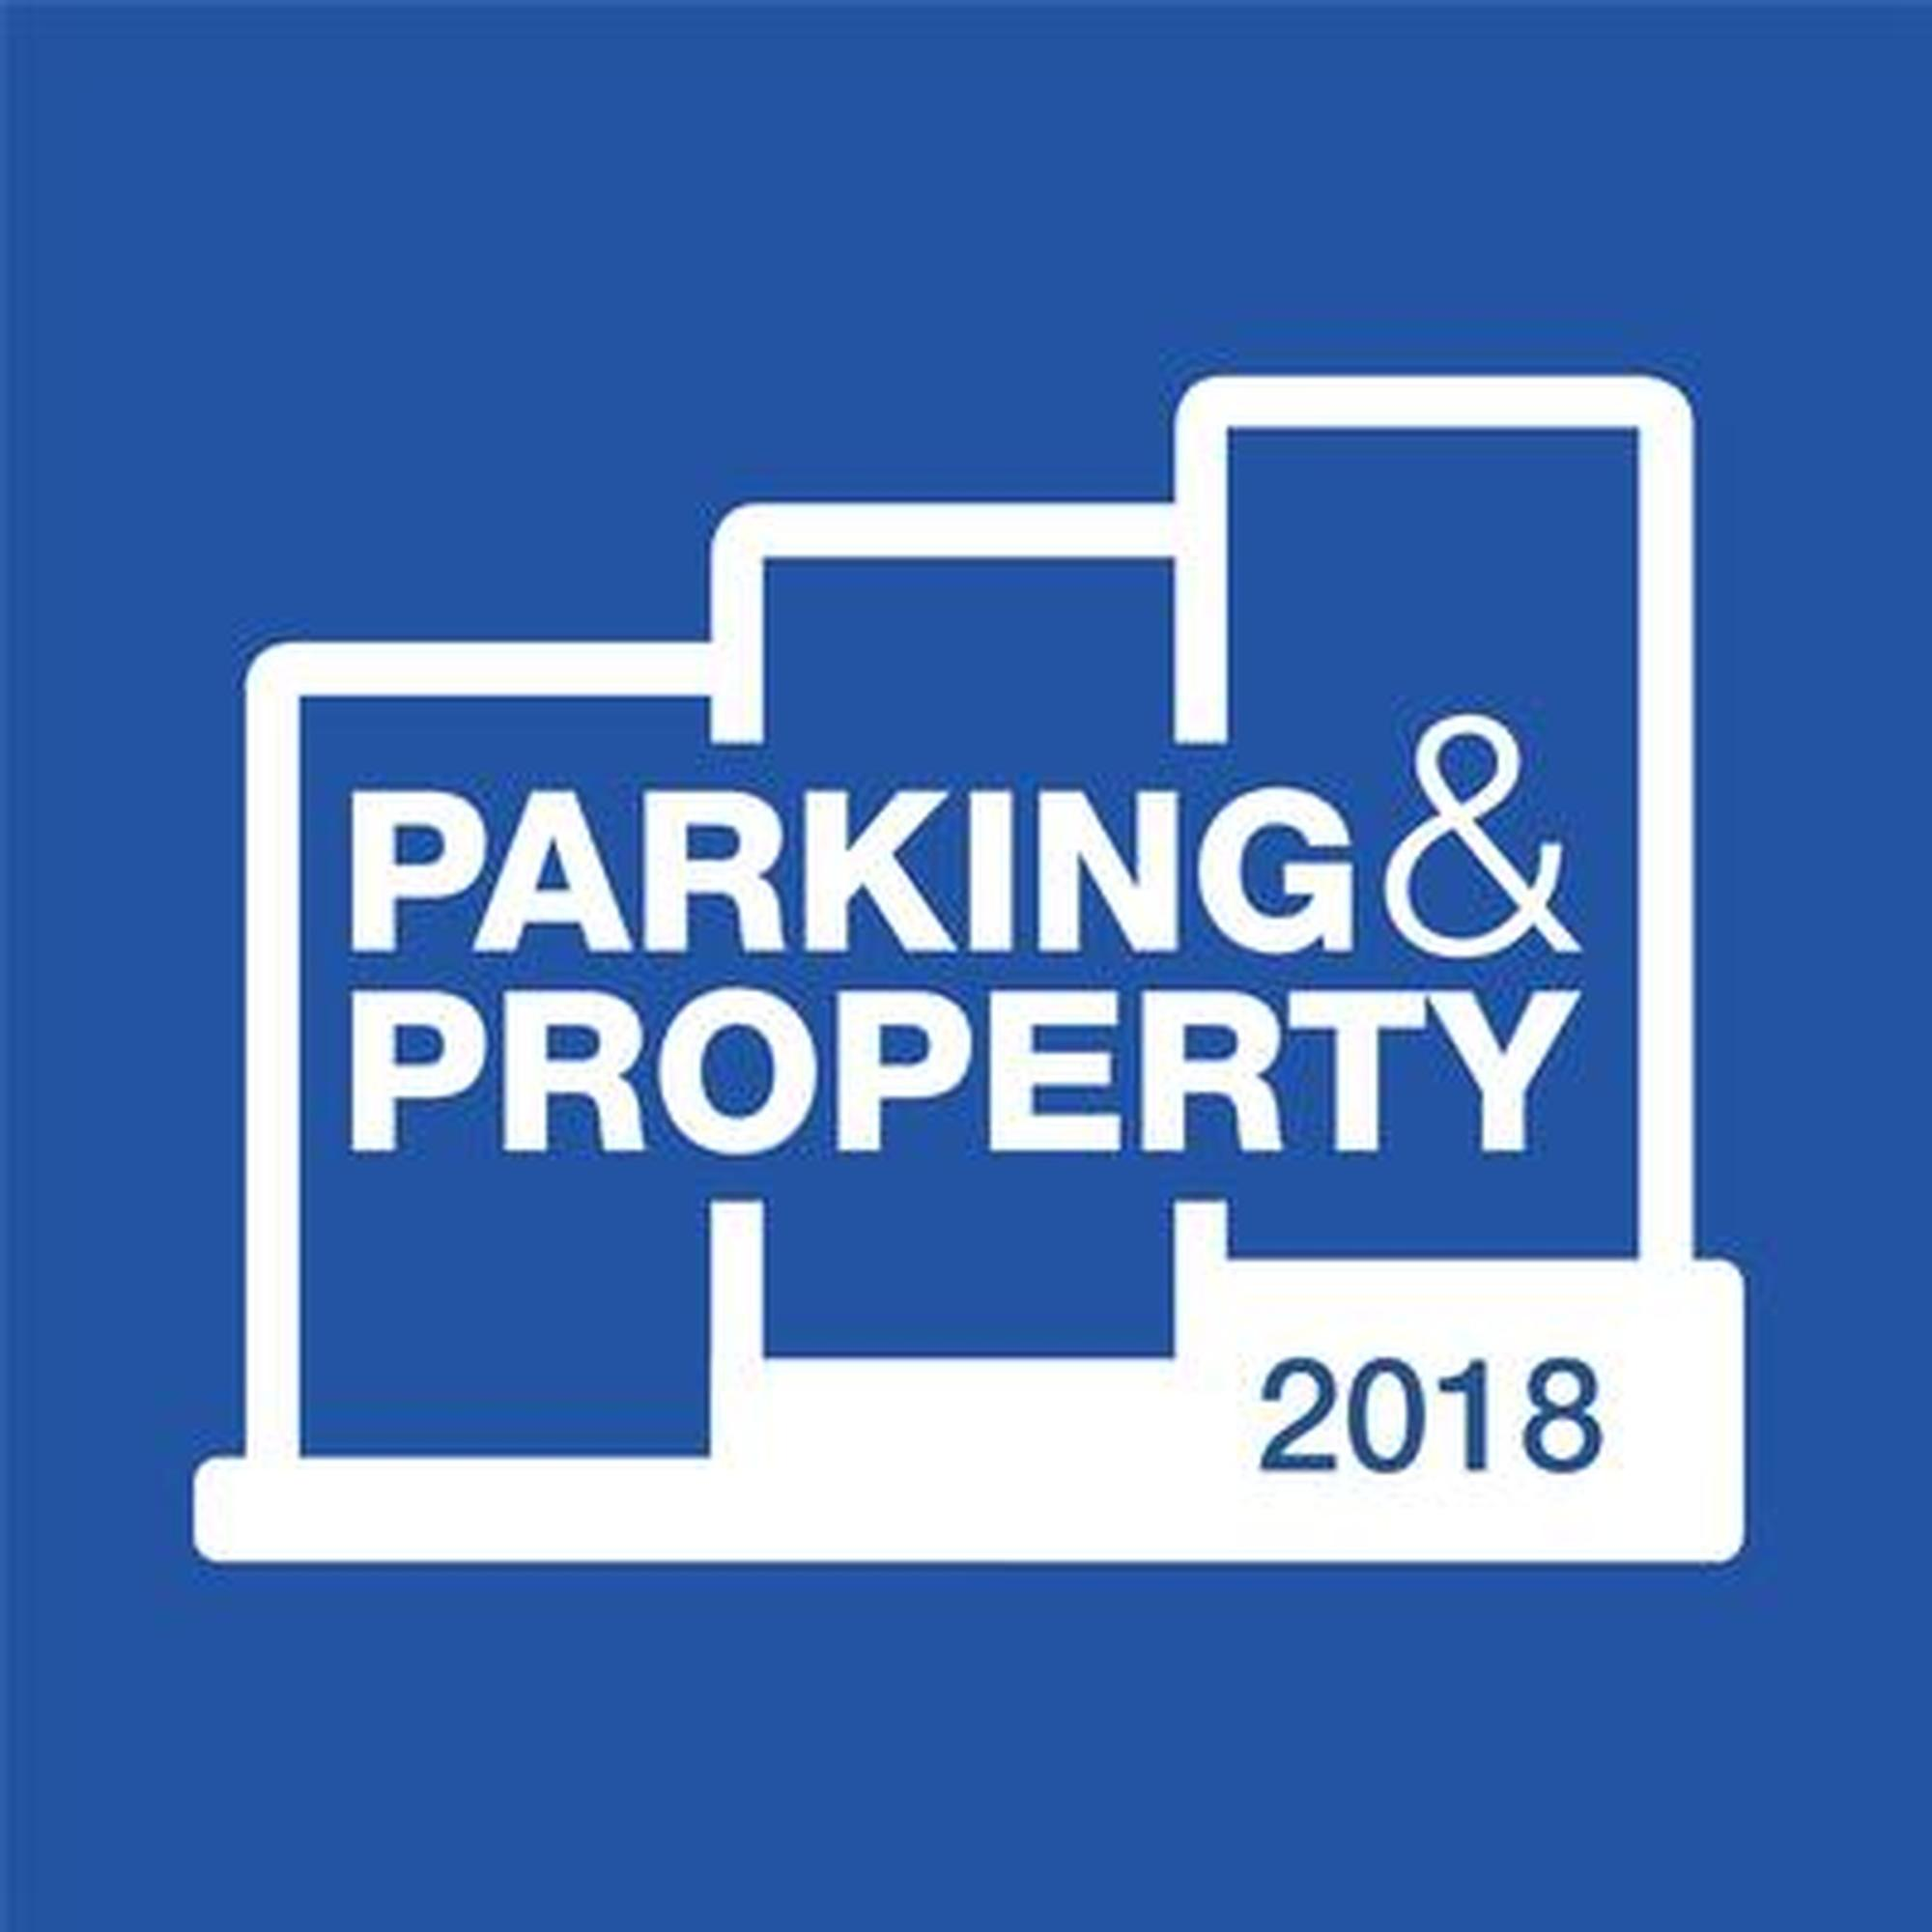 Parking & Property 2018: Building the future of parking